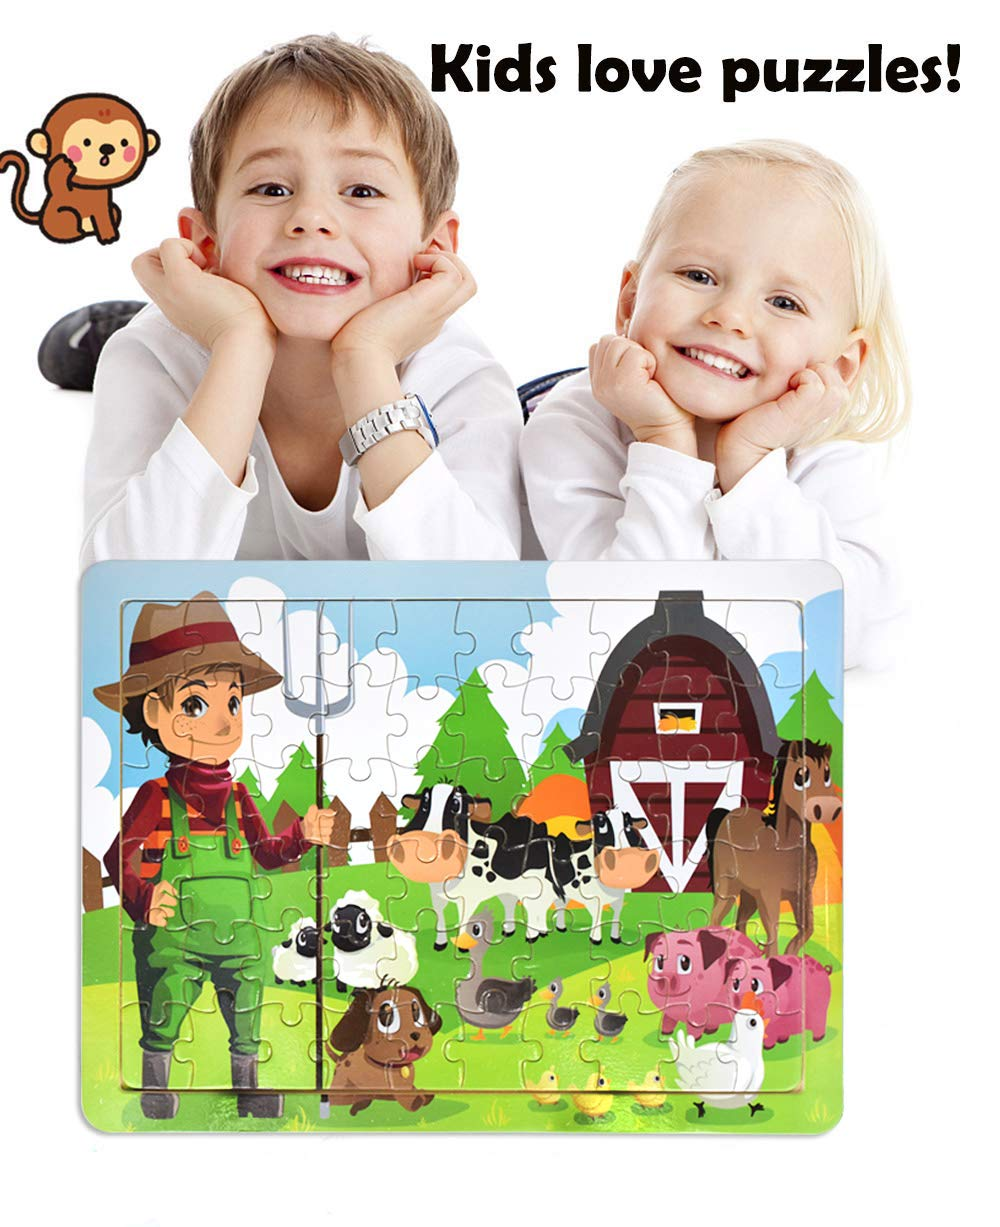 4 Puzzles Wooden Jigsaw Puzzles Set for Kids Age 3-8 Year Old 60 Piece Animals Colorful Wooden Puzzles for Toddler Children Learning Educational Puzzles Toys for Boys and Girls